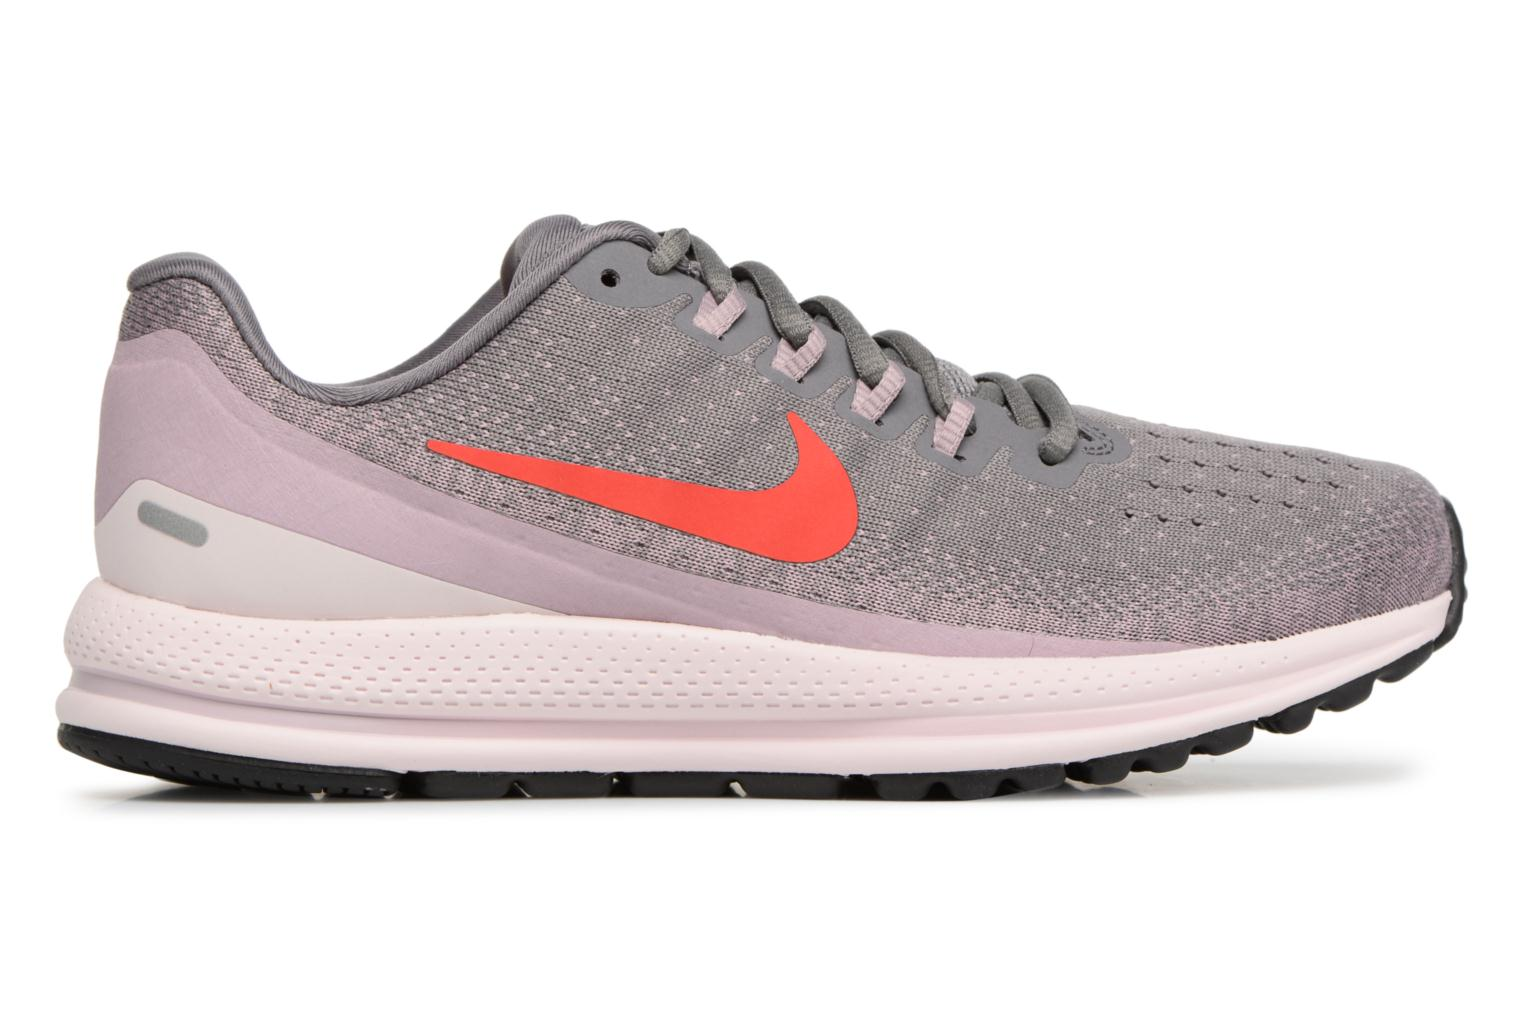 Nike Wmns Nike Air Zoom Vomero 13 Grijs Korting Aaa OR1z6w